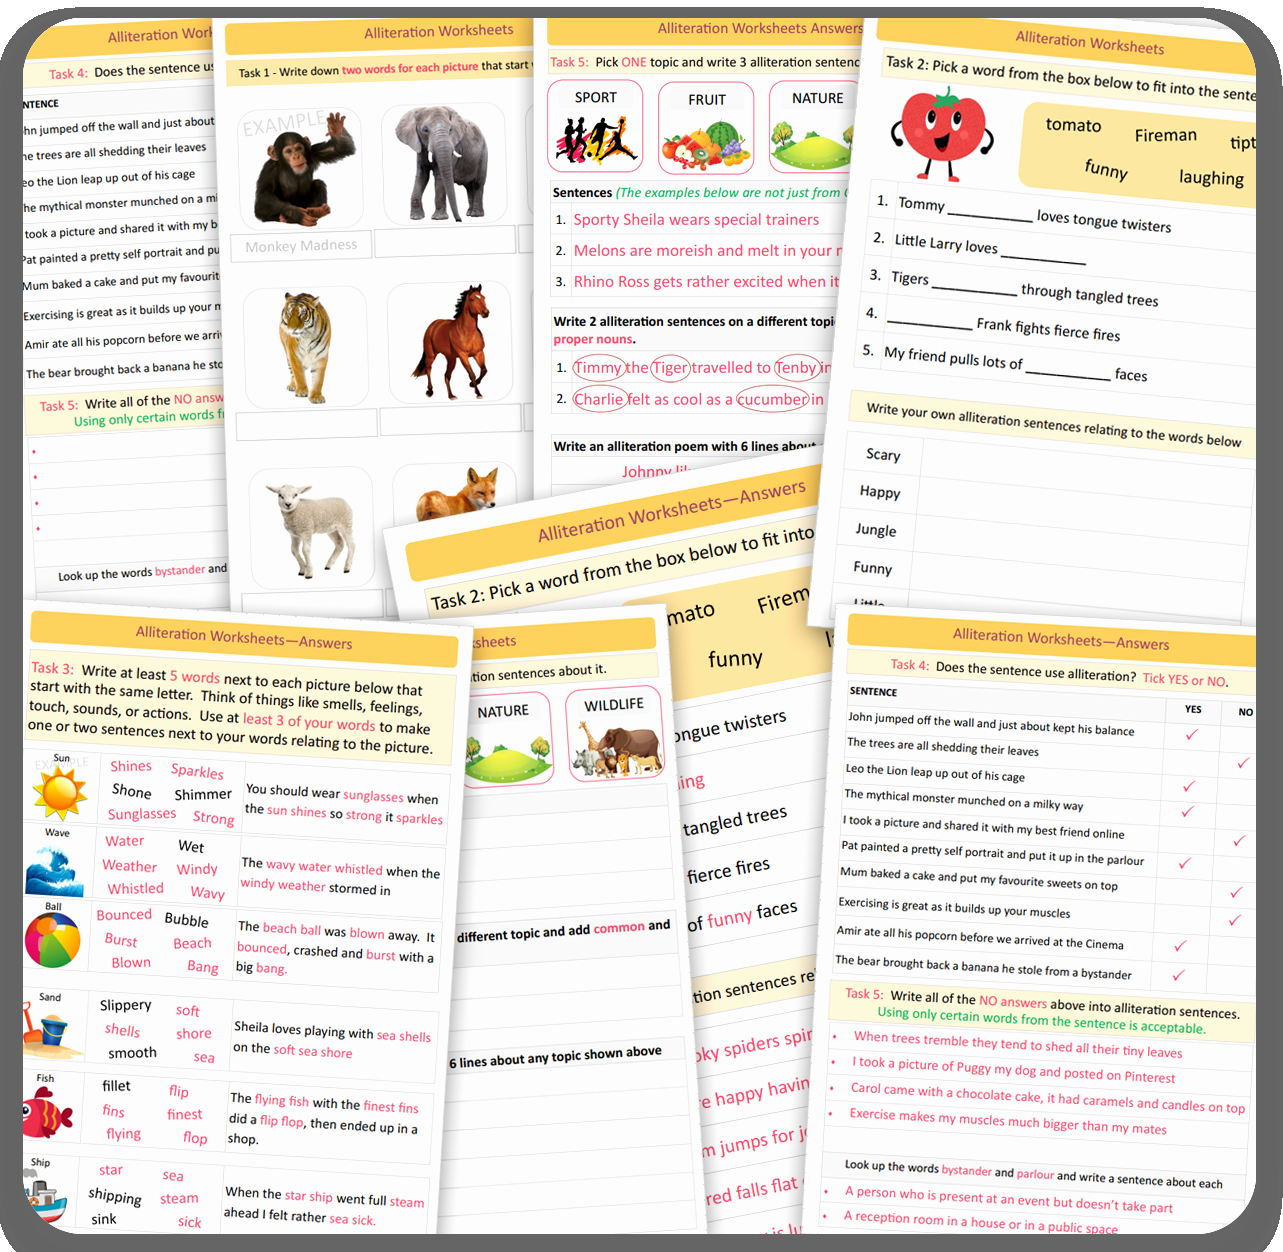 Alliteration Worksheets with Answers Fresh Alliteration Literacy Worksheets Visual Tasks with